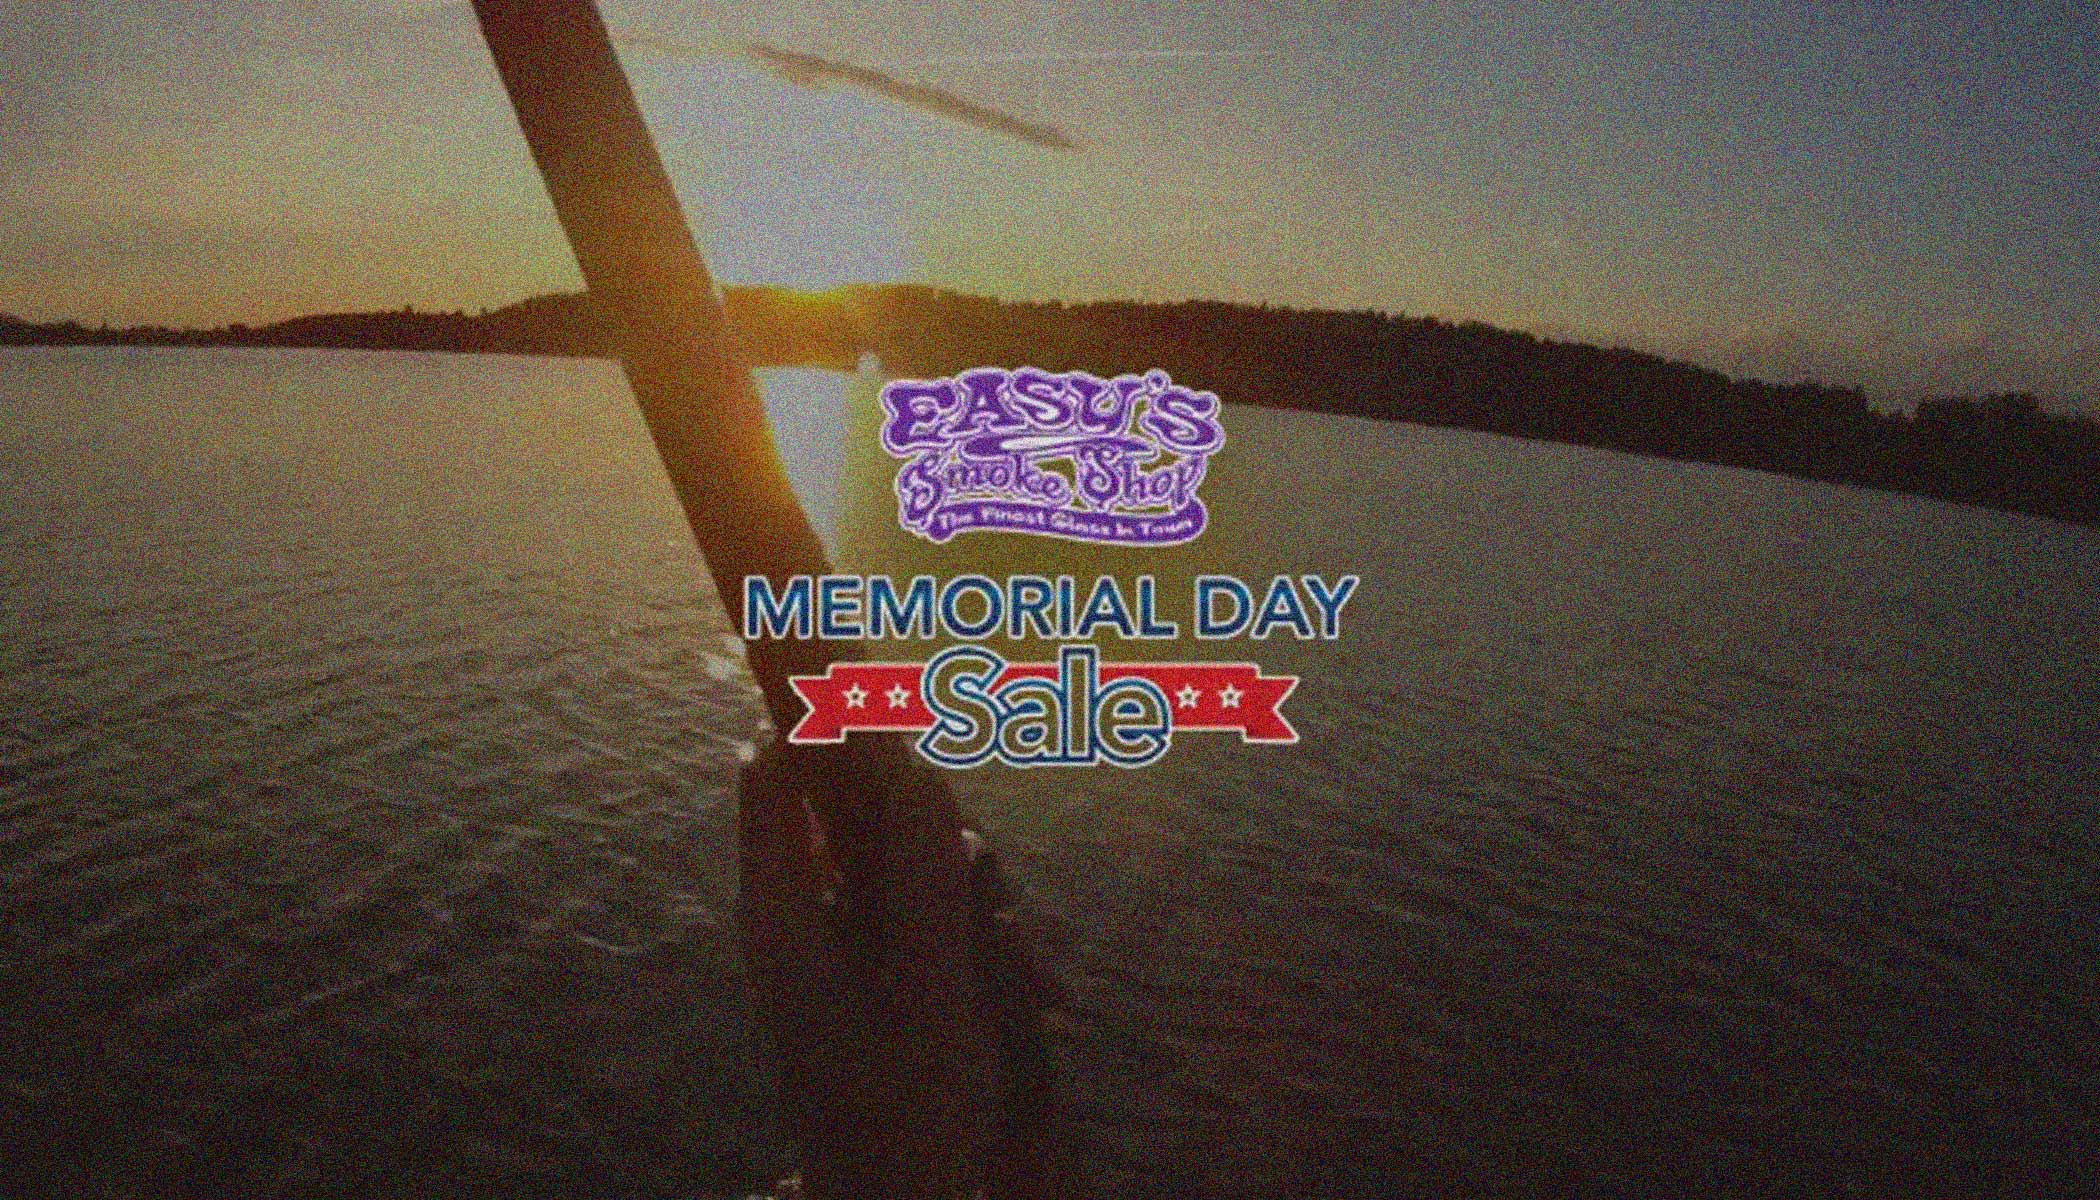 2017 Memorial Day Sale Easys Smoke Shop